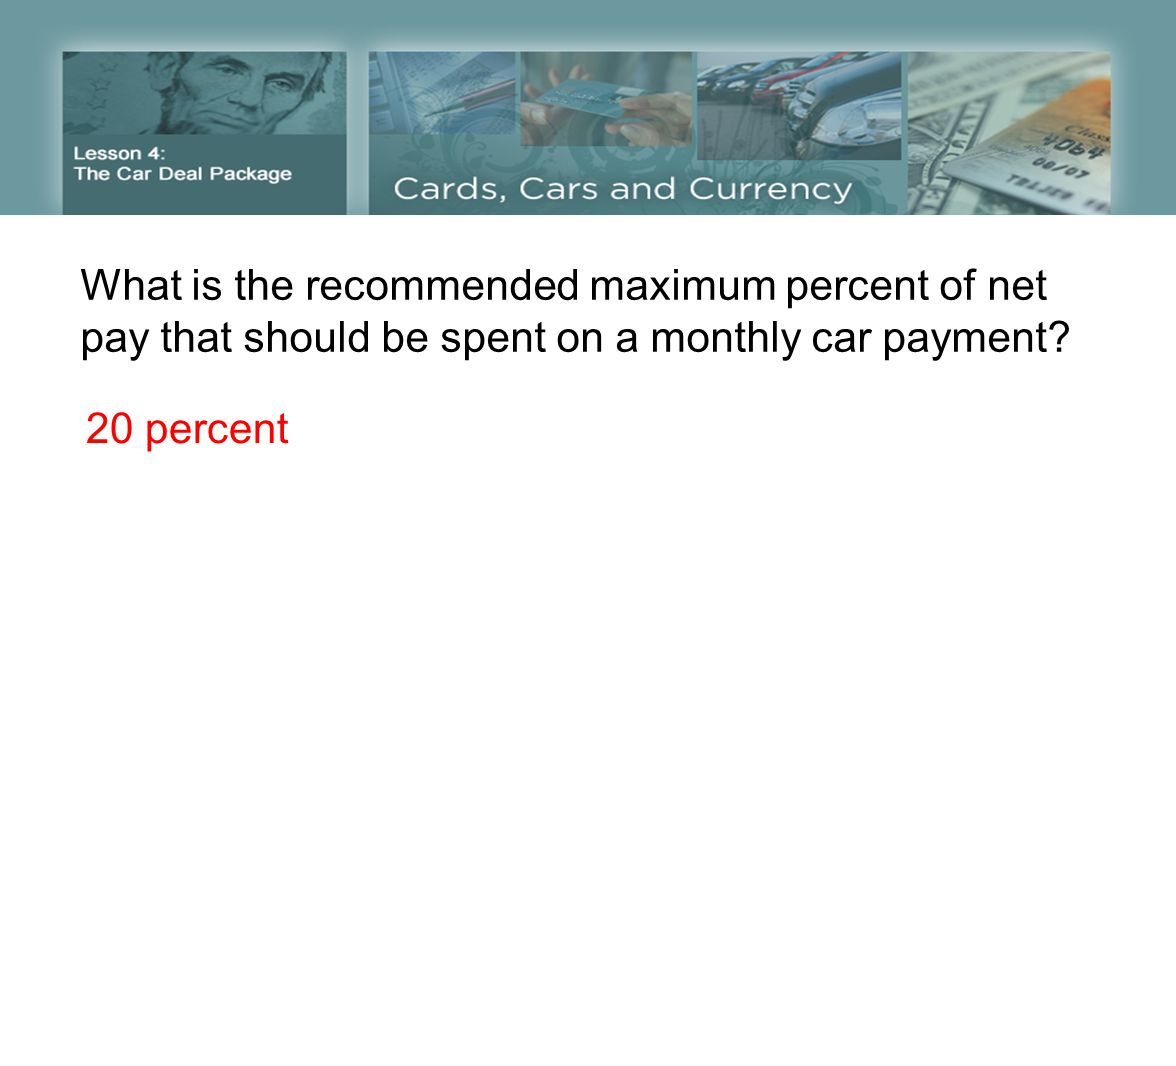 What is the recommended maximum percent of net pay that should be spent on a monthly car payment.